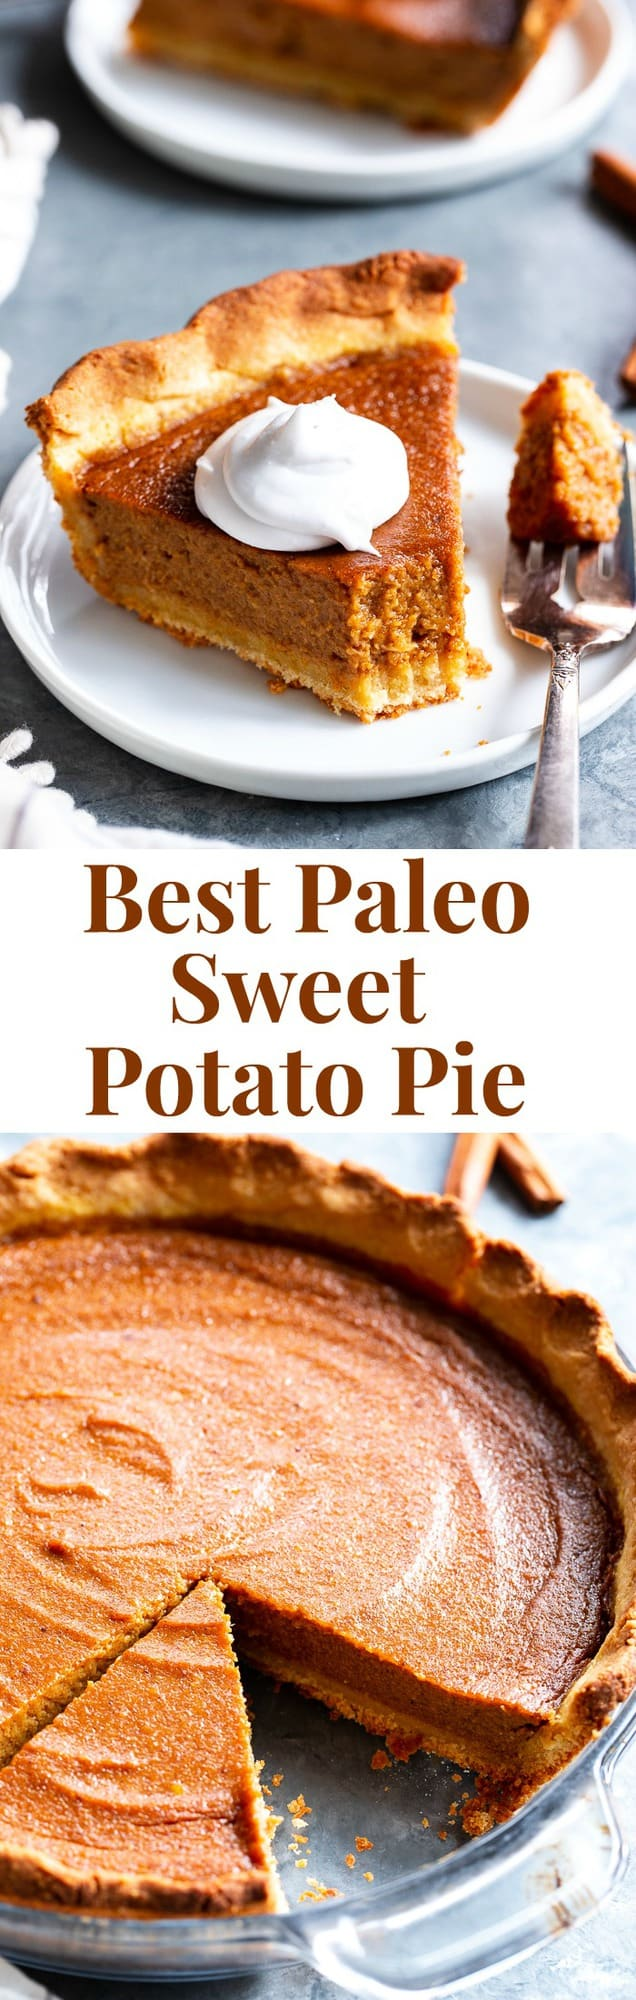 This Paleo Sweet Potato Pie is a total showstopper for the holidays! It has a grain free and paleo crust that tastes just like the real deal, and a creamy filling filled with sweet warm spices, you'll be hooked with the first bite. Both the crust and filling use the new Paleo Baking Flour Blend from @KingArthurFlour that gives it that totally legit texture and flavor! Gluten-free, grain free, refined sugar free, dairy free option. #AD